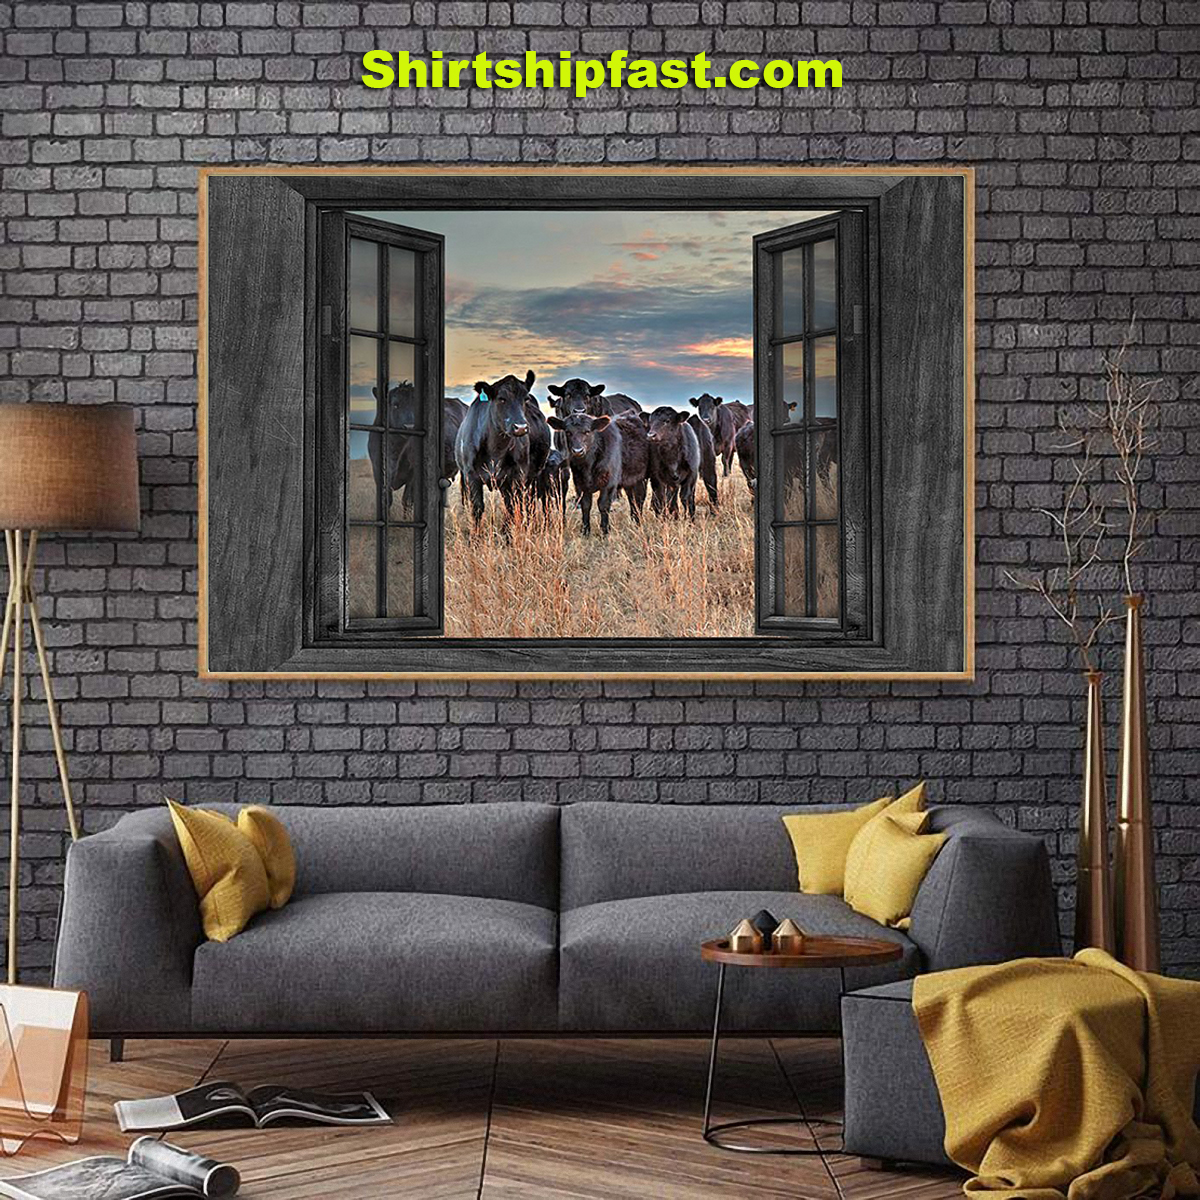 Cows by the window canvas prints - Picture 1